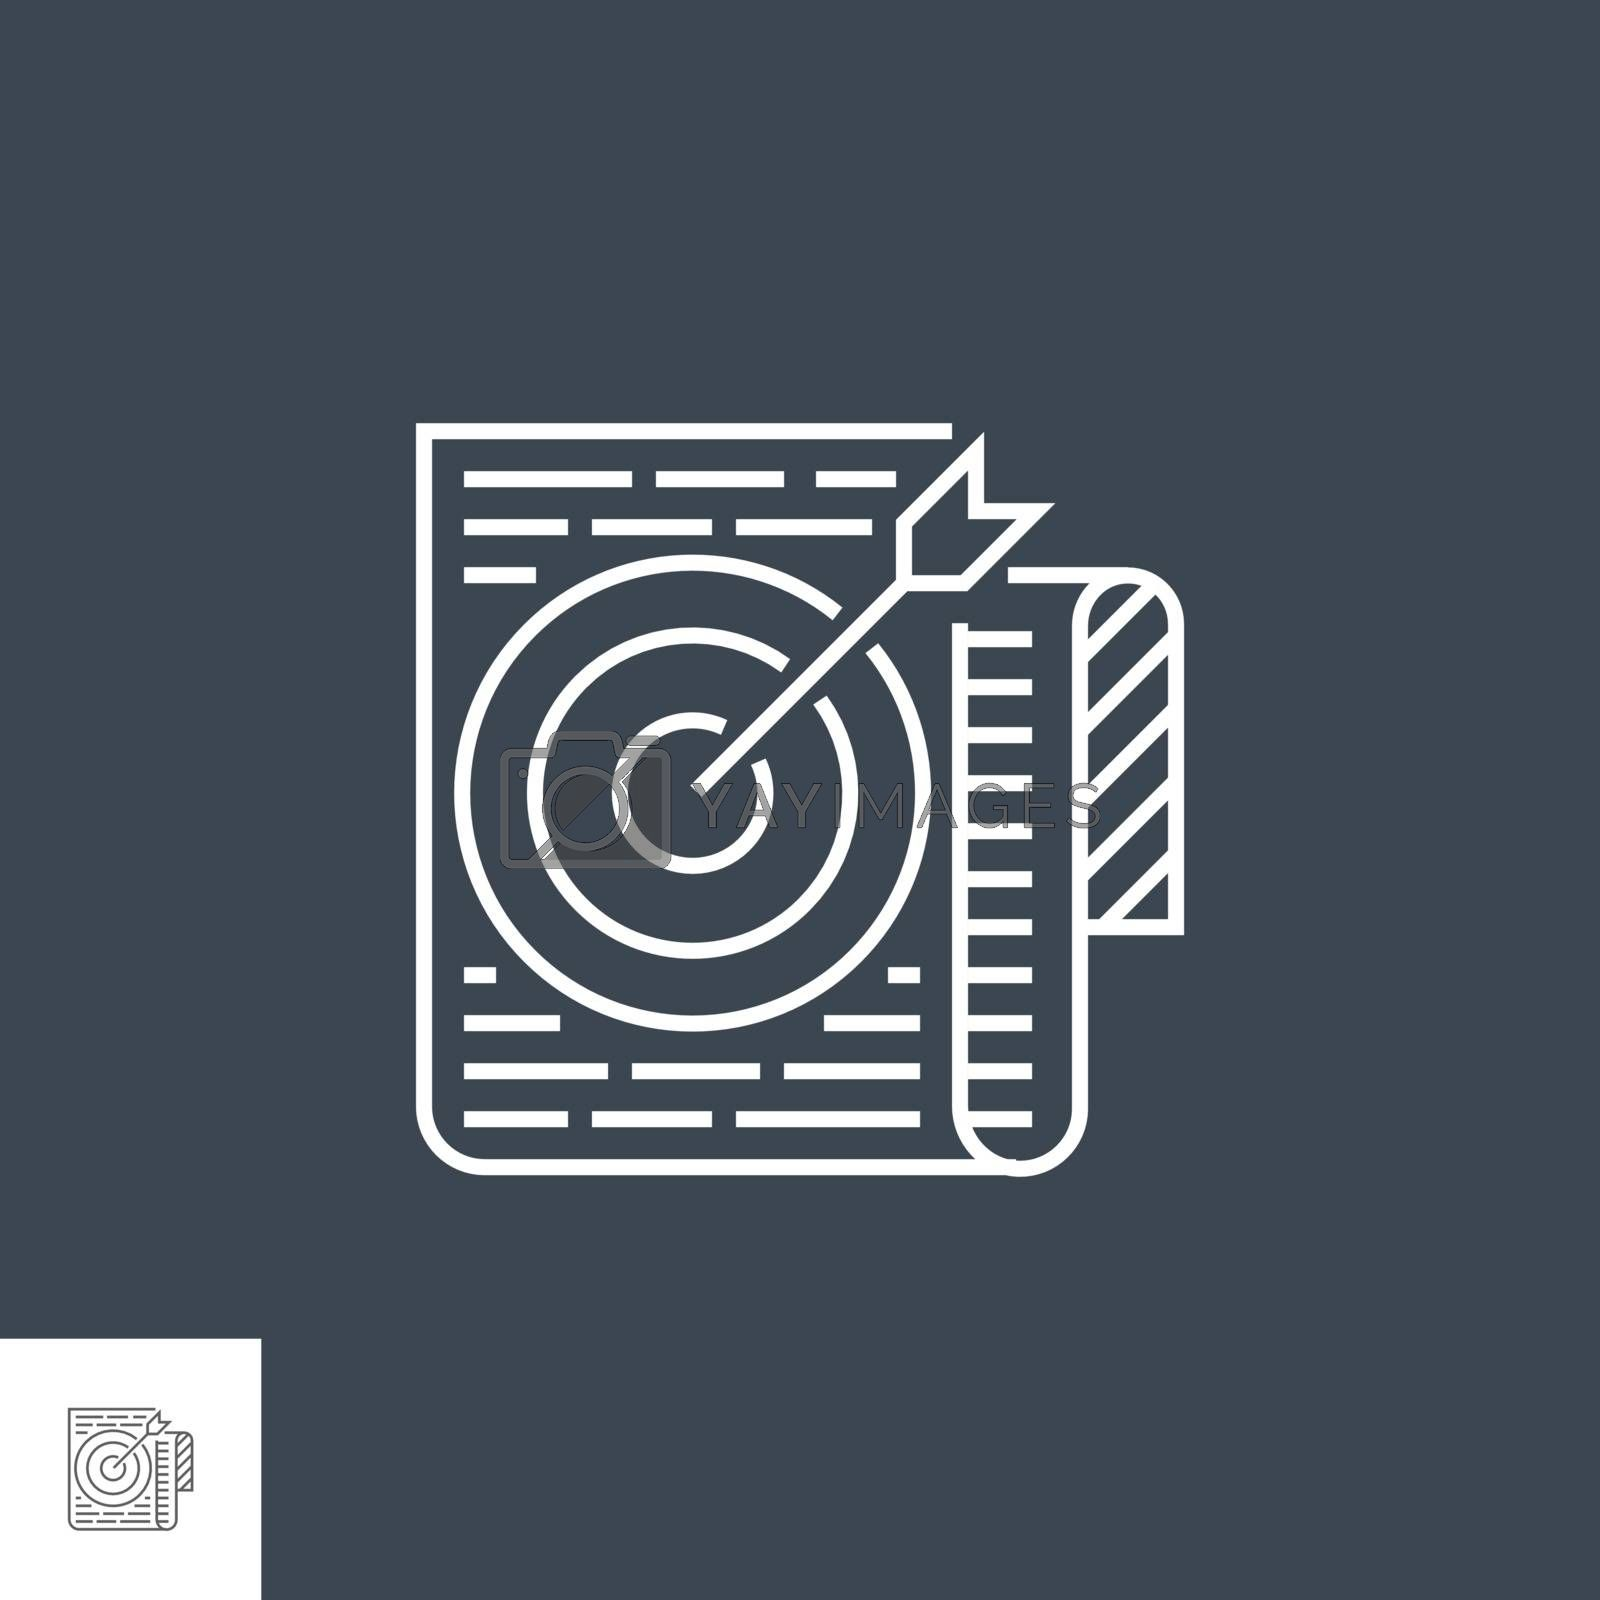 Target Keywords Line Icon by smoki